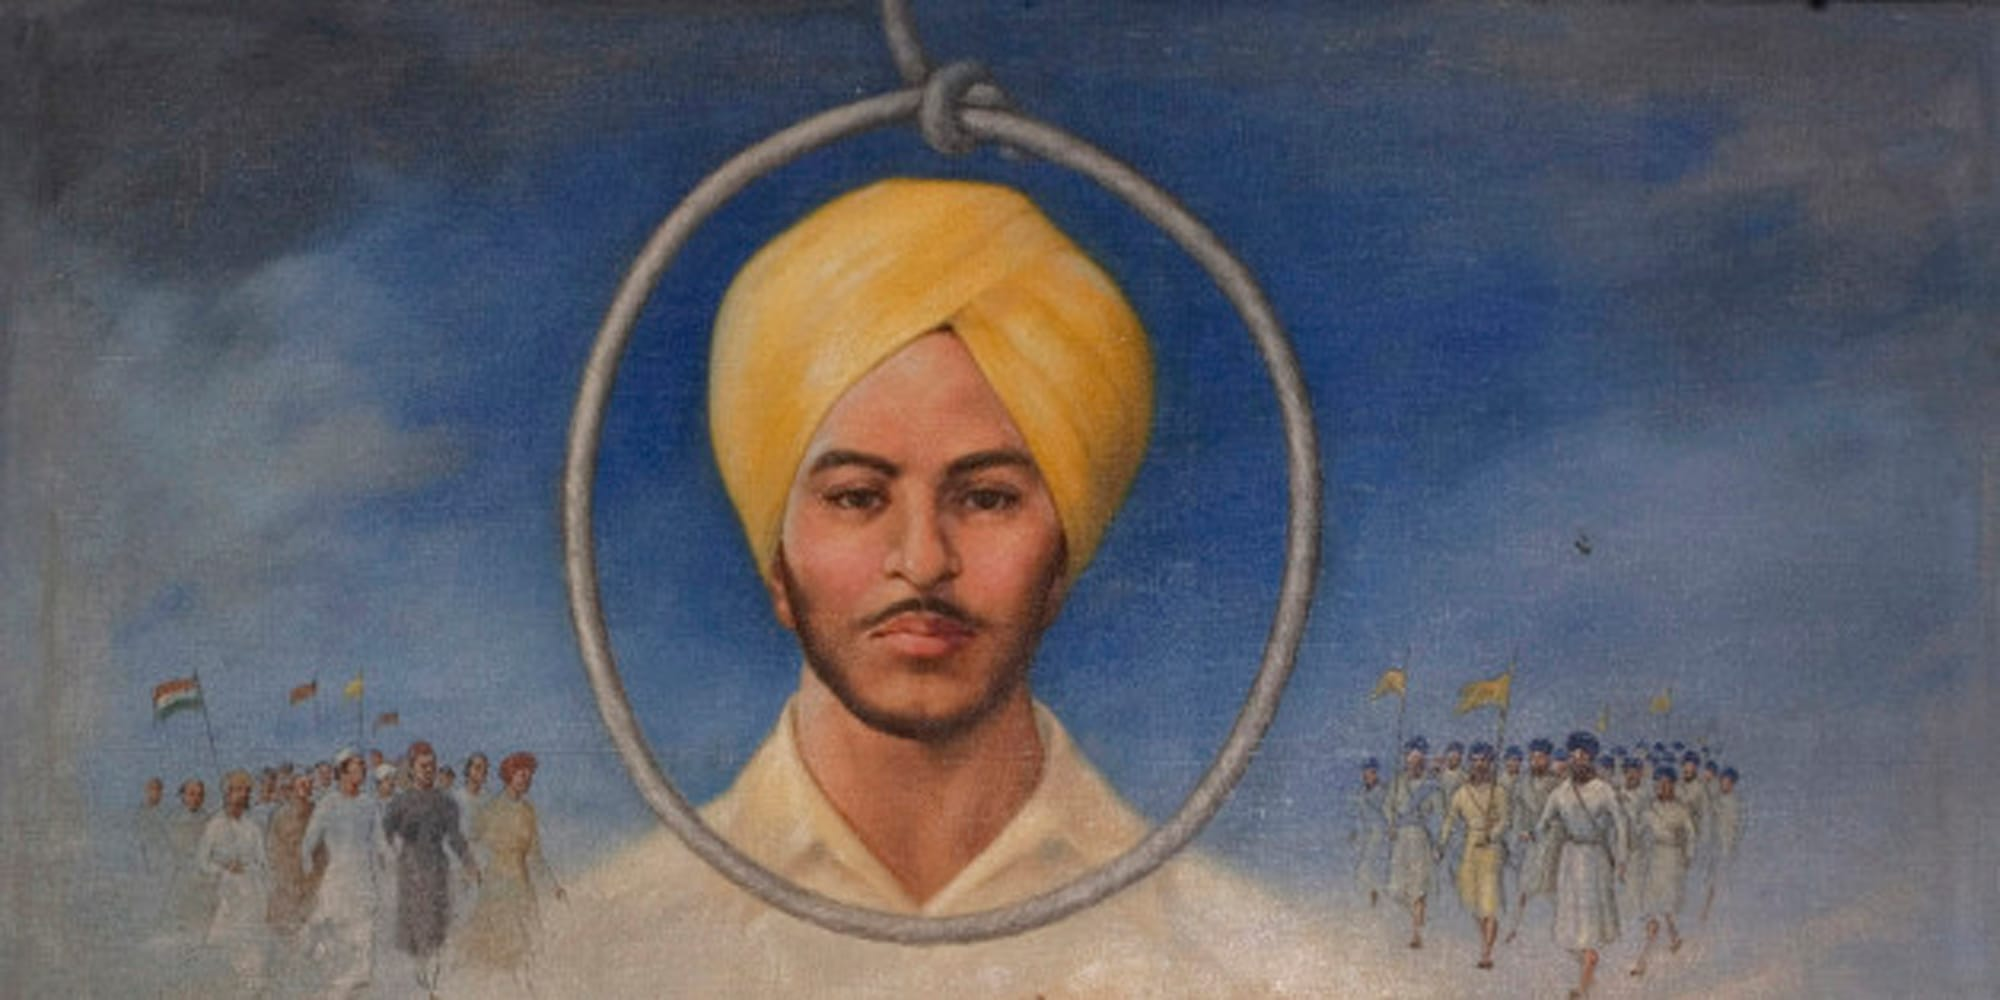 bhagat singh huffington post the idea of bhagat singh